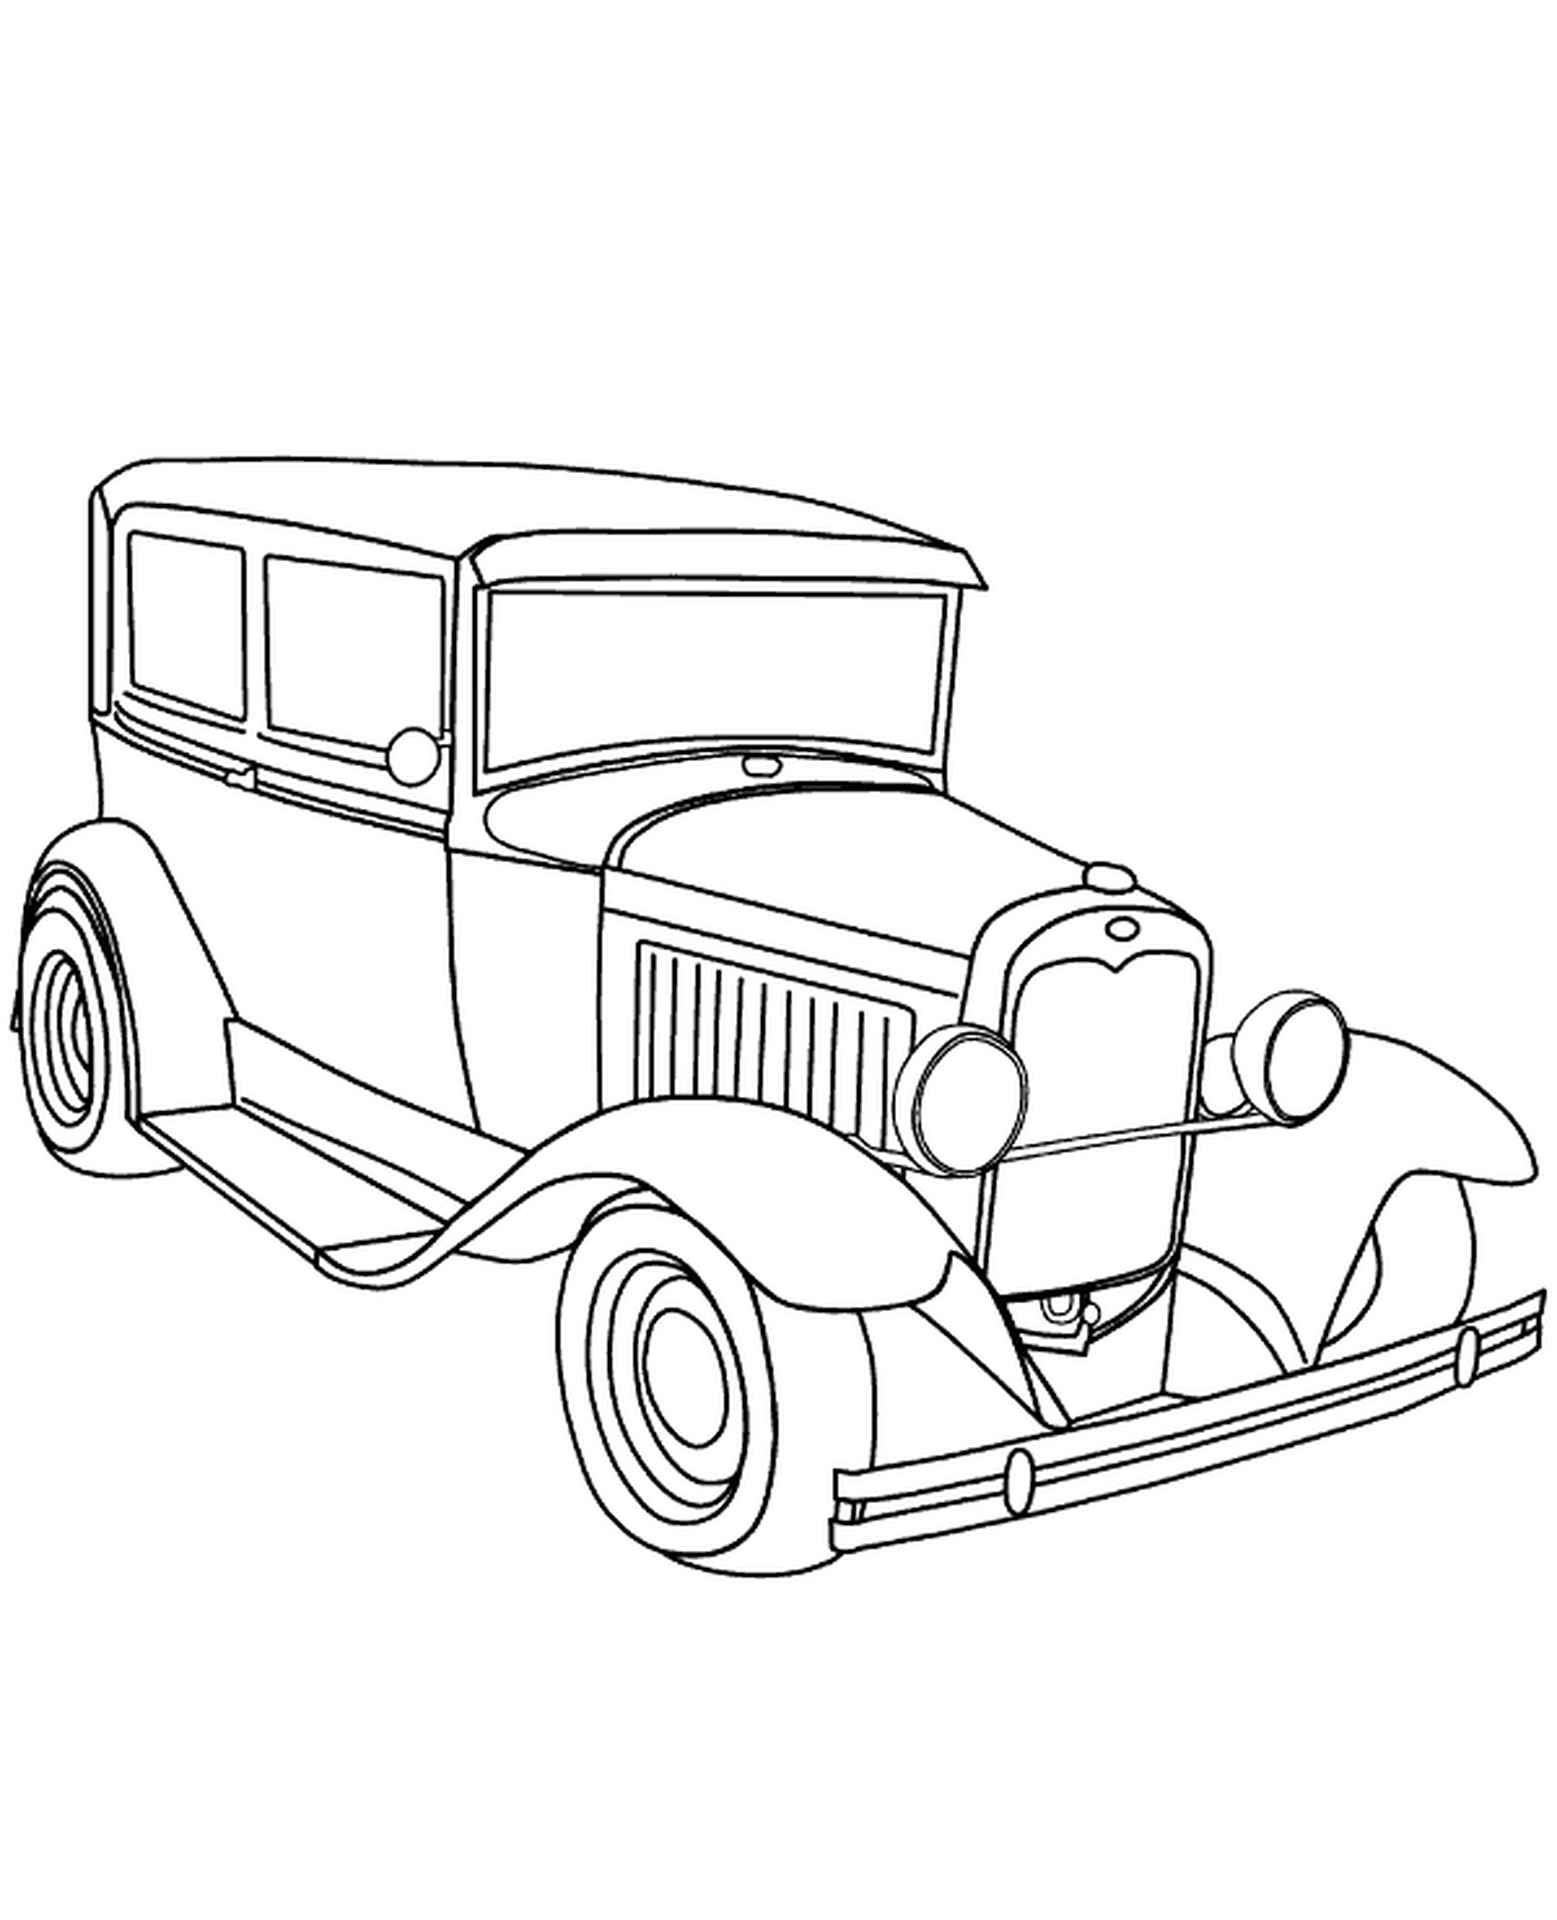 Old, Classic Car Coloring Sheet